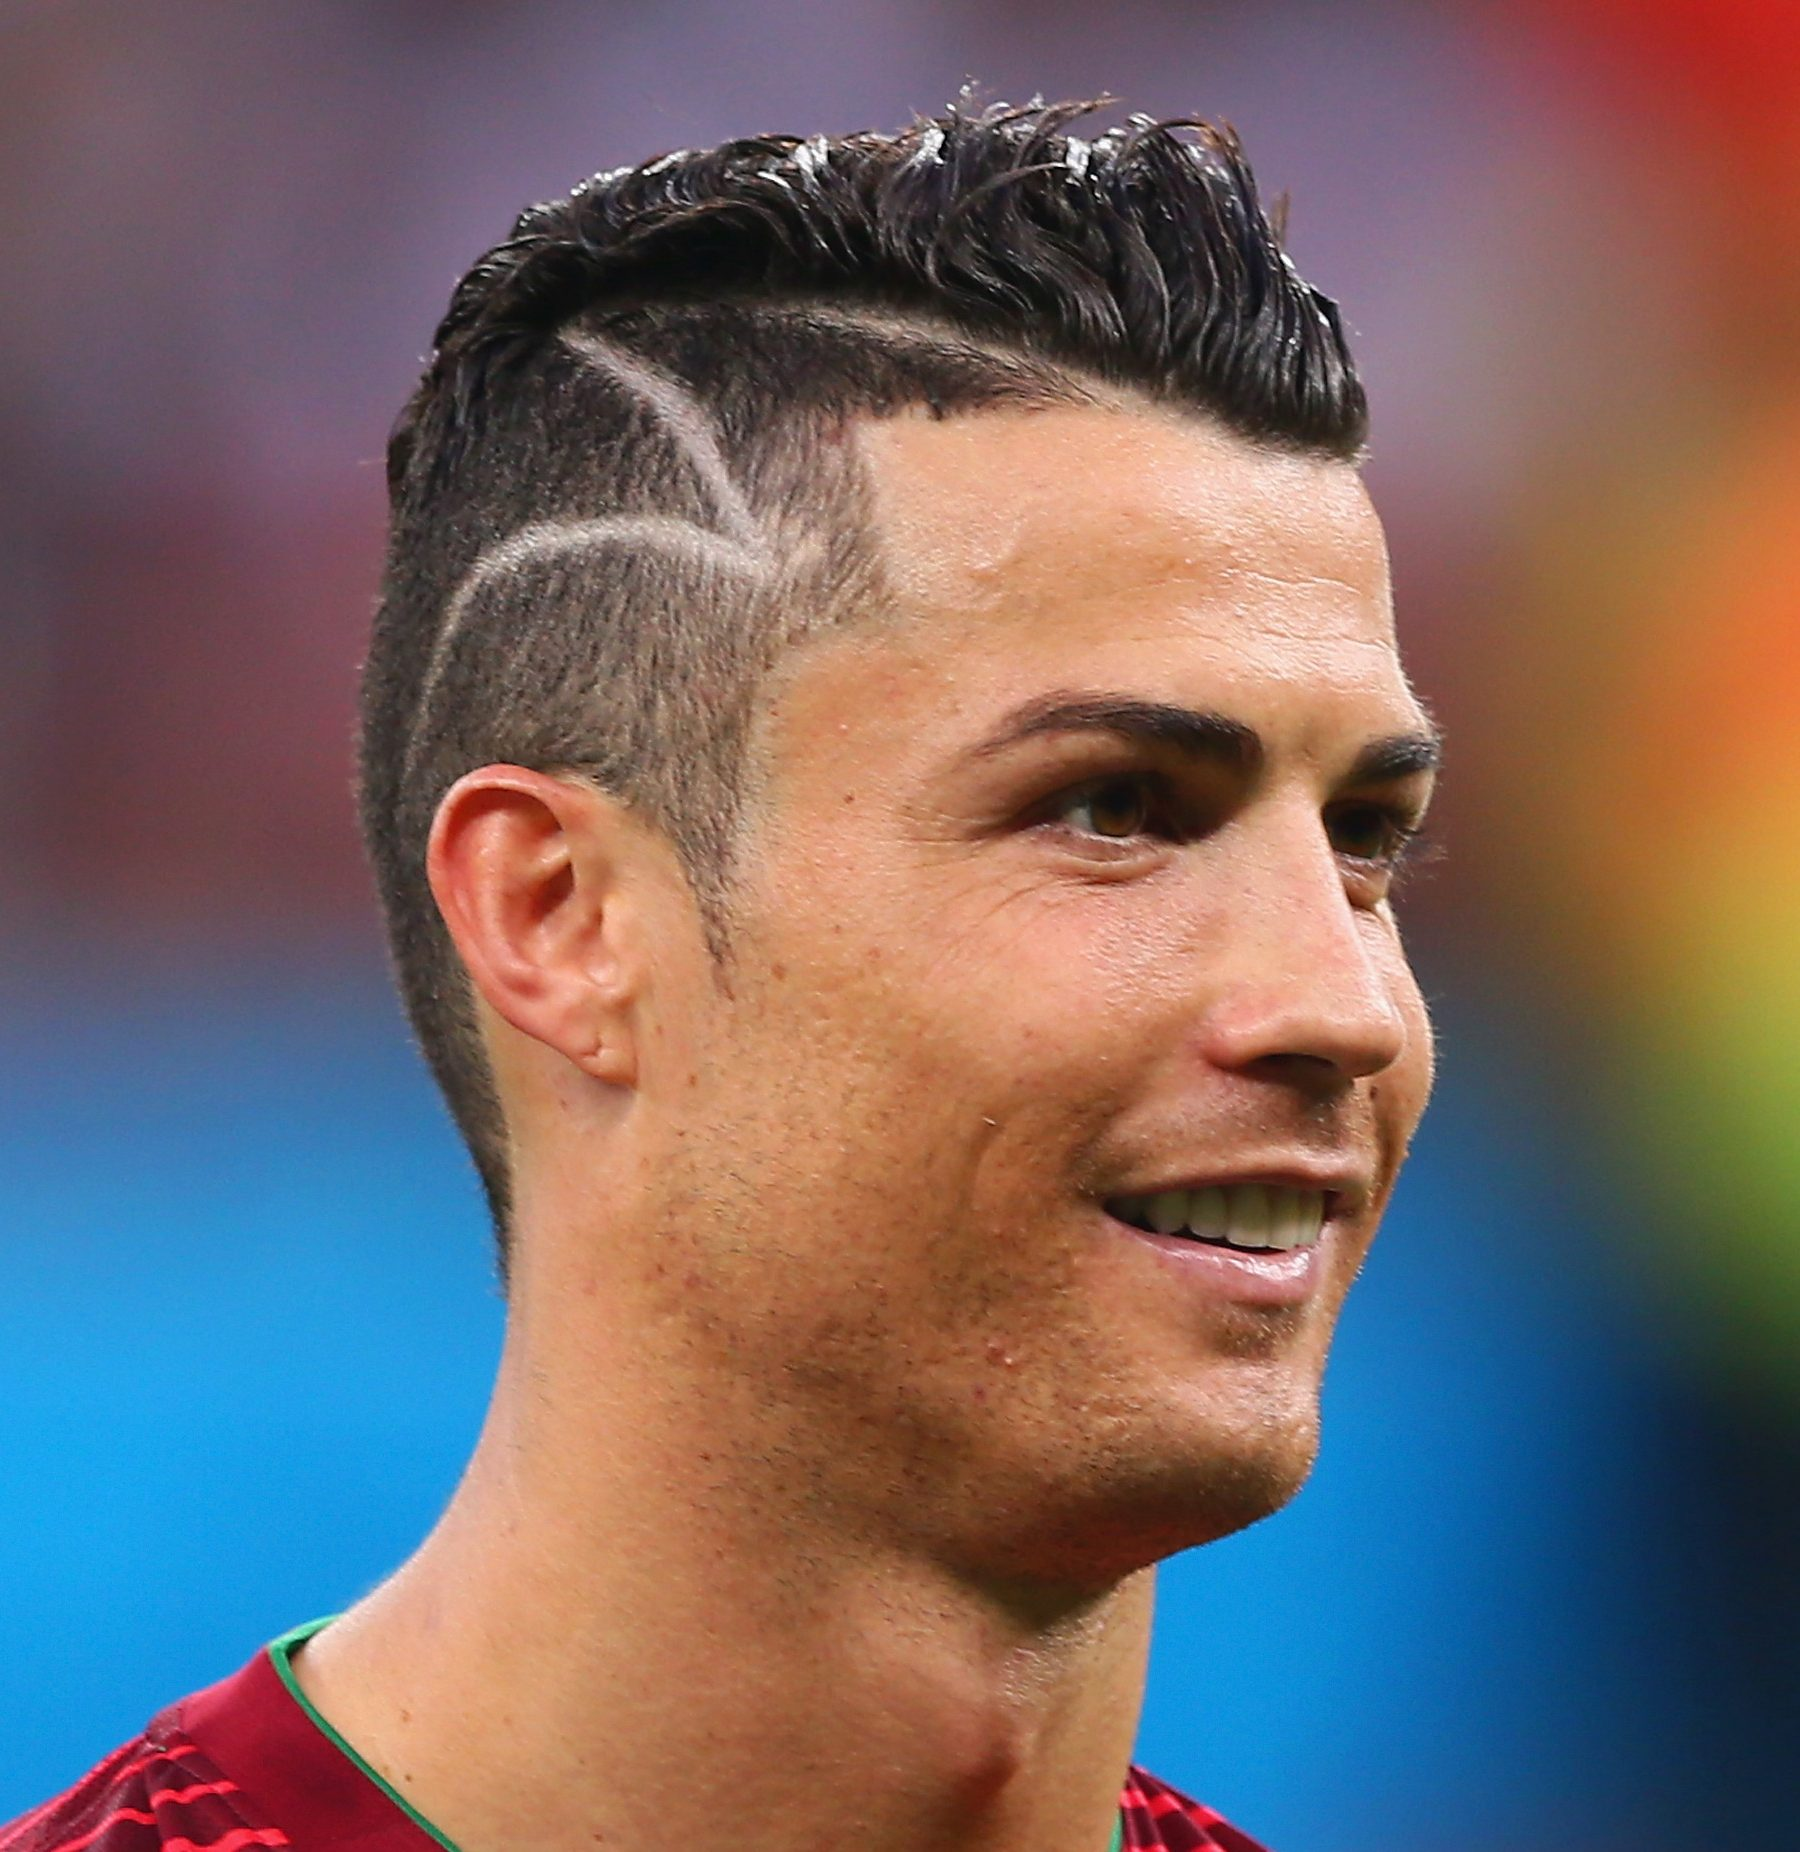 Cristiano Ronaldo Haircut - Cr7 hairstyle wallpaper